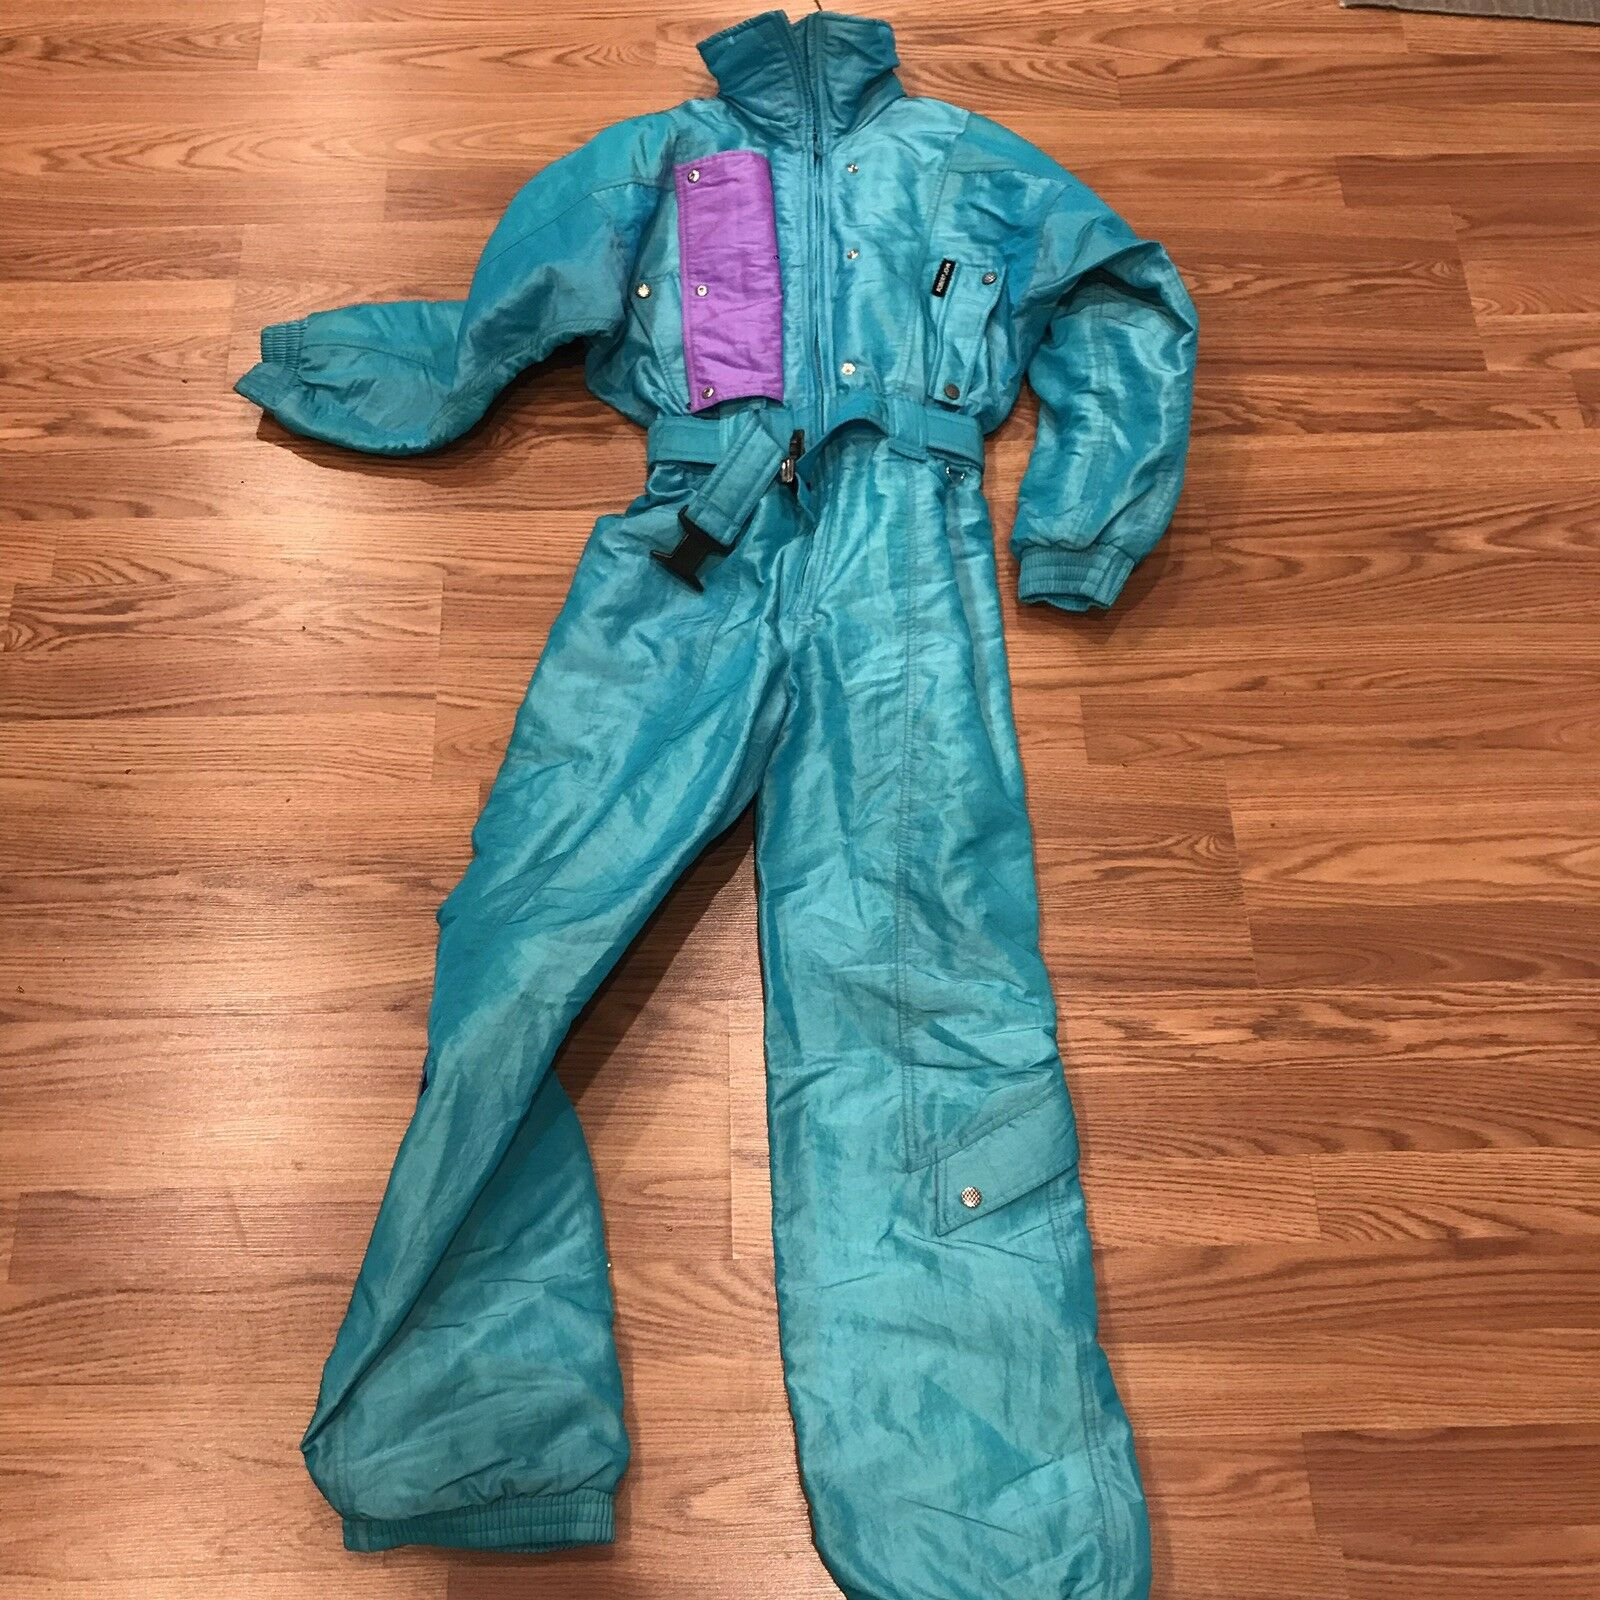 Vintage 80s ROBERT JOHN neon 1 piece ski suit waterproof insulated snow damen's